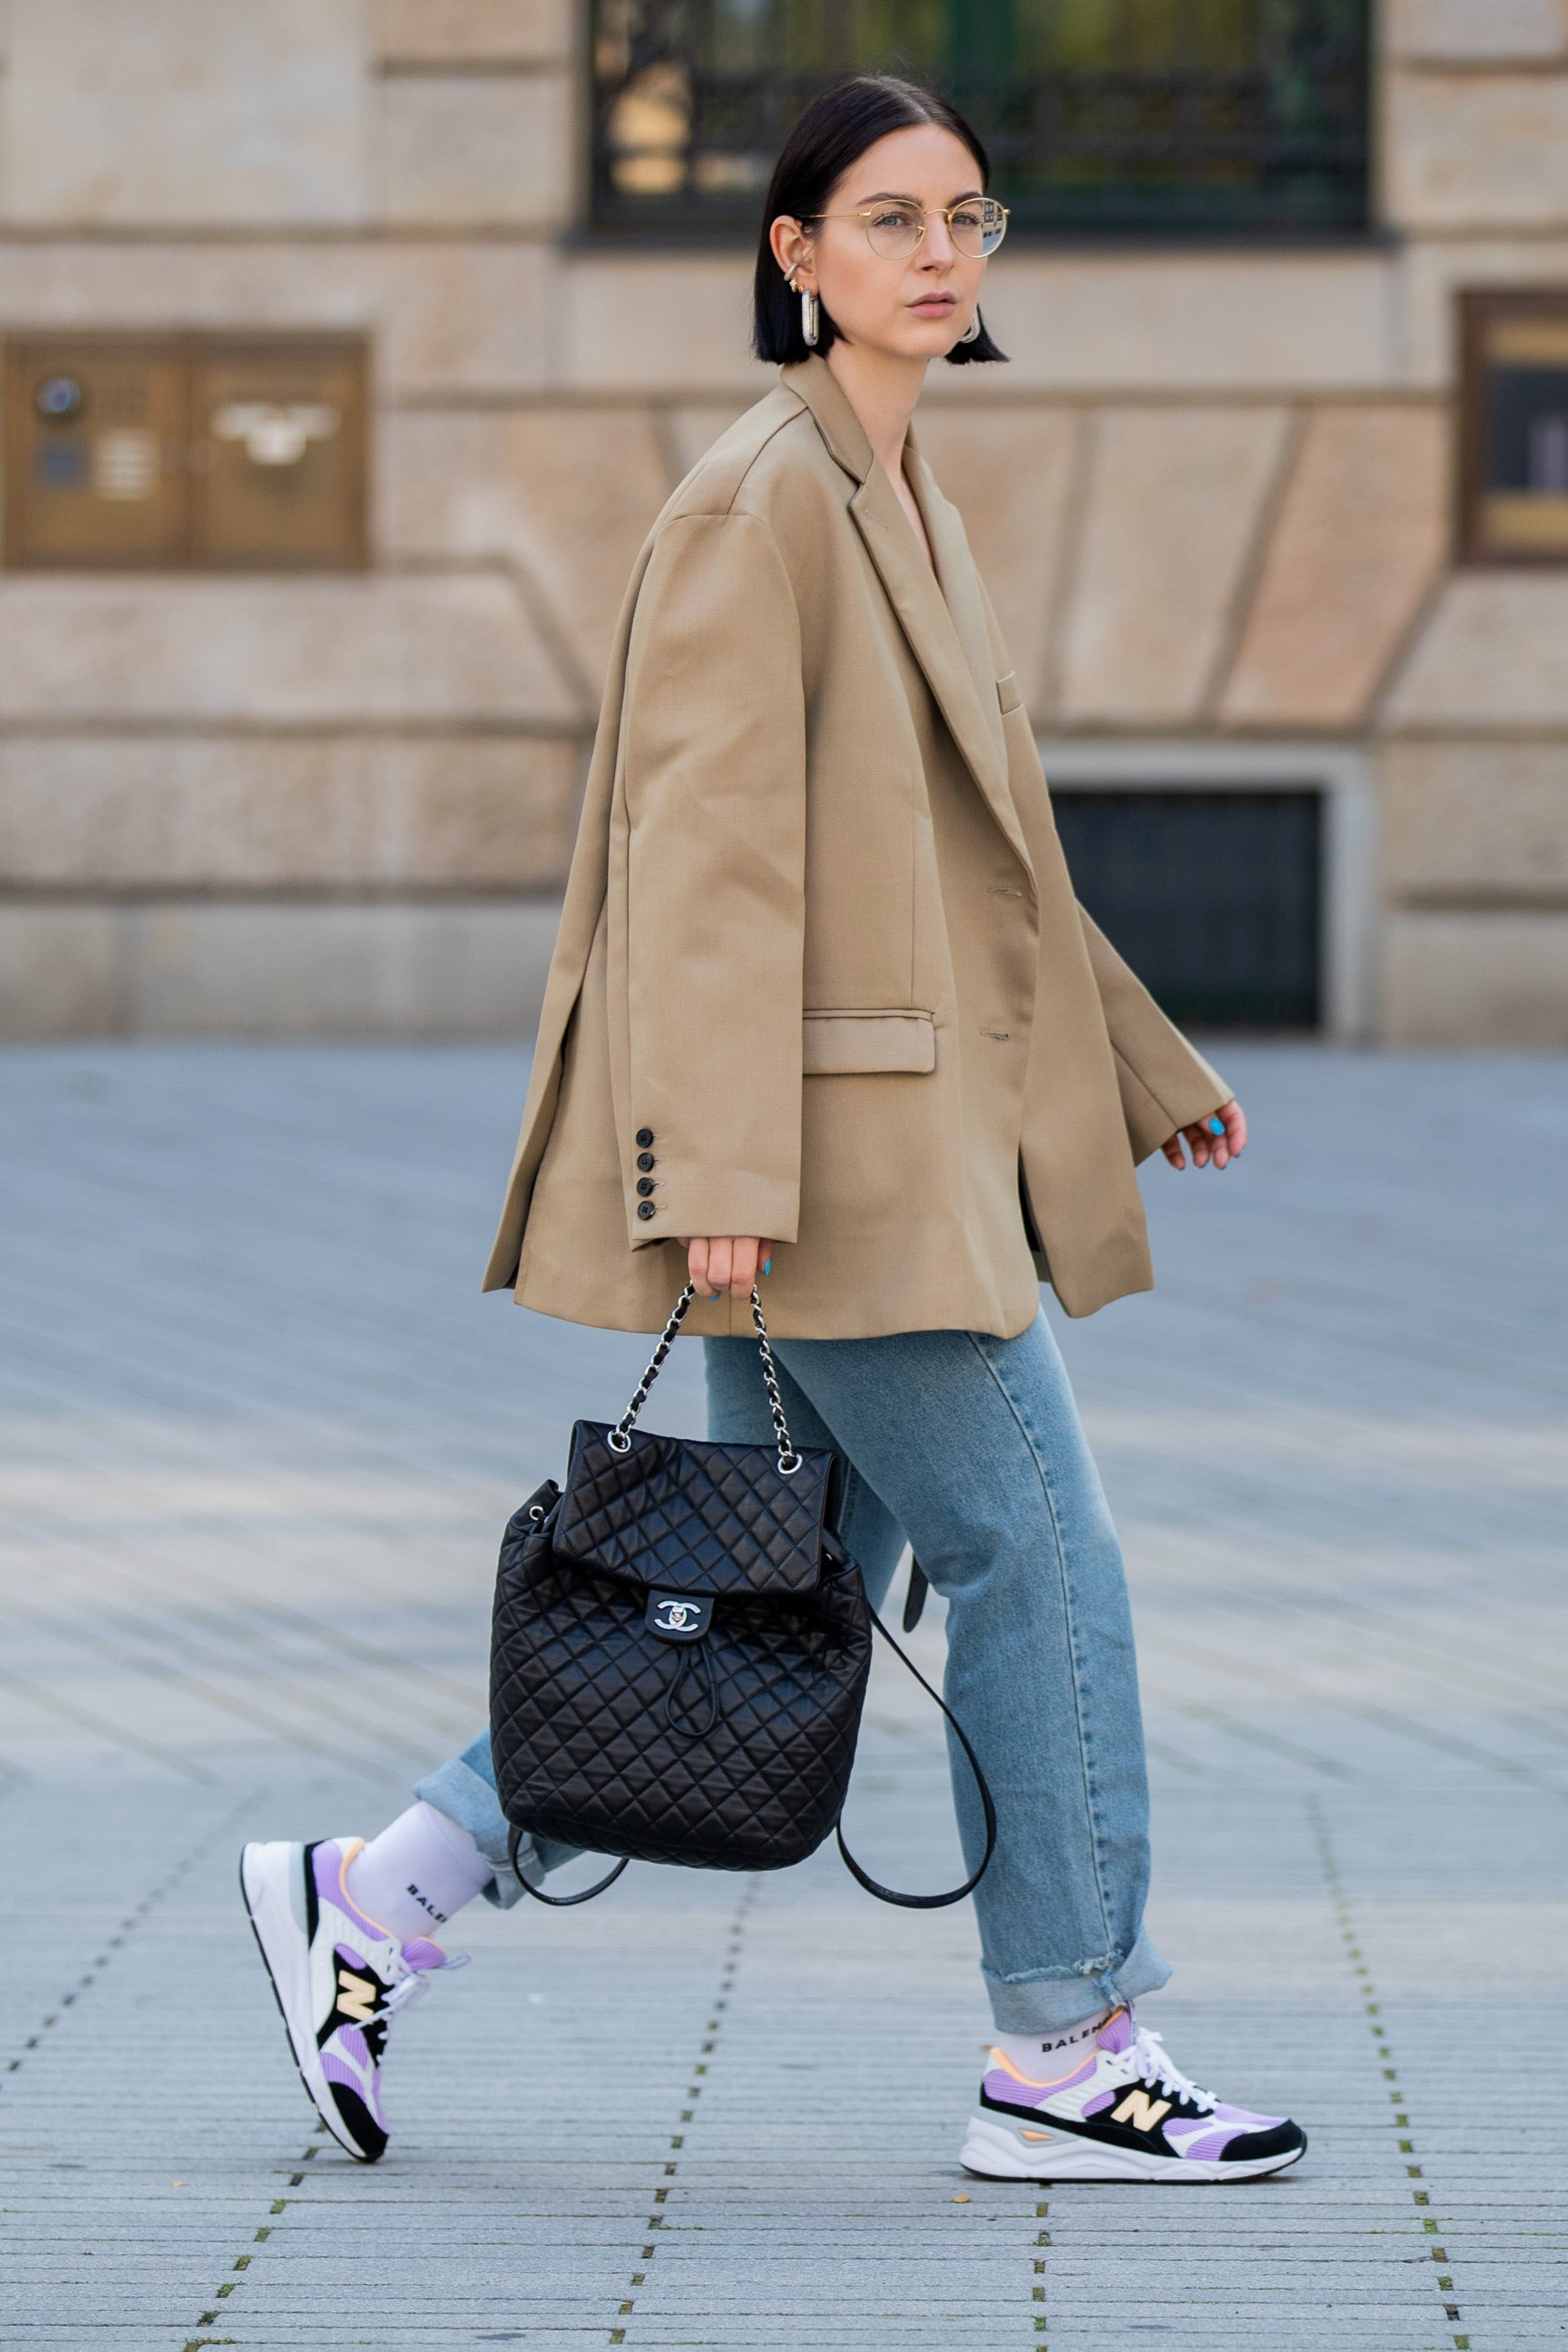 New Balance Sneakers Are the Latest Street Style Stars — Shop These 10 Pairs For Yourself